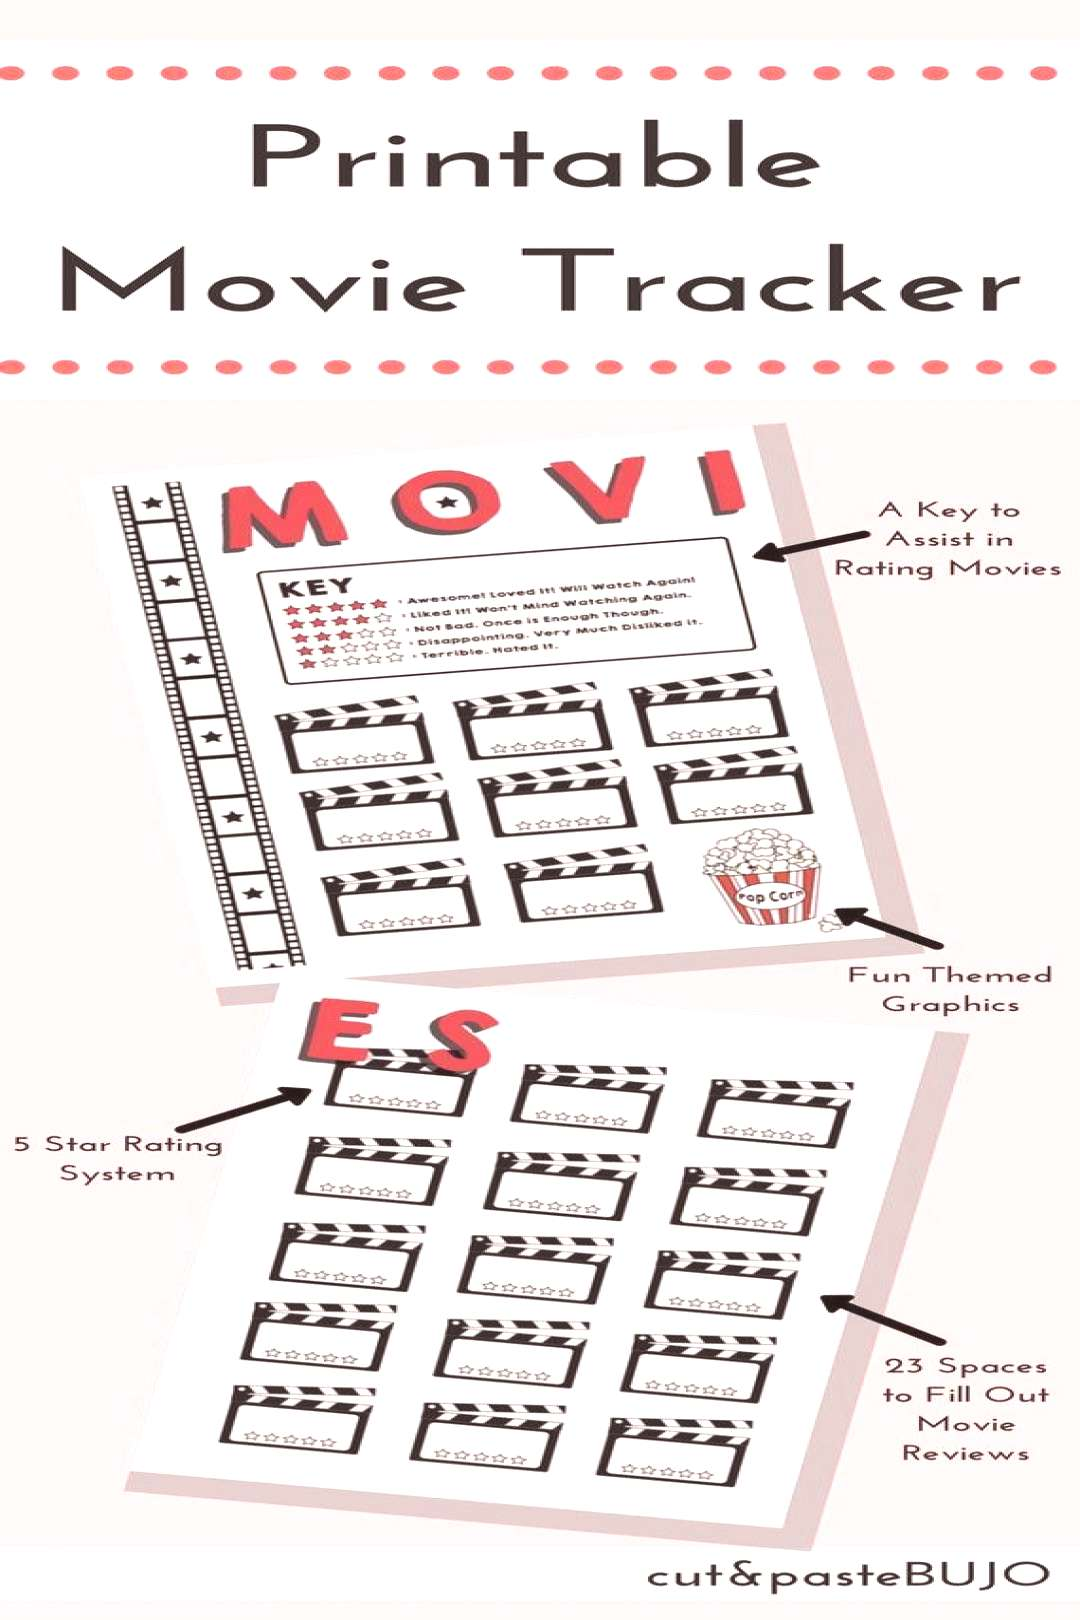 Movies To Watch Teenagers Chick Flicks Articles Articles   movies to watch teenagers chick flick